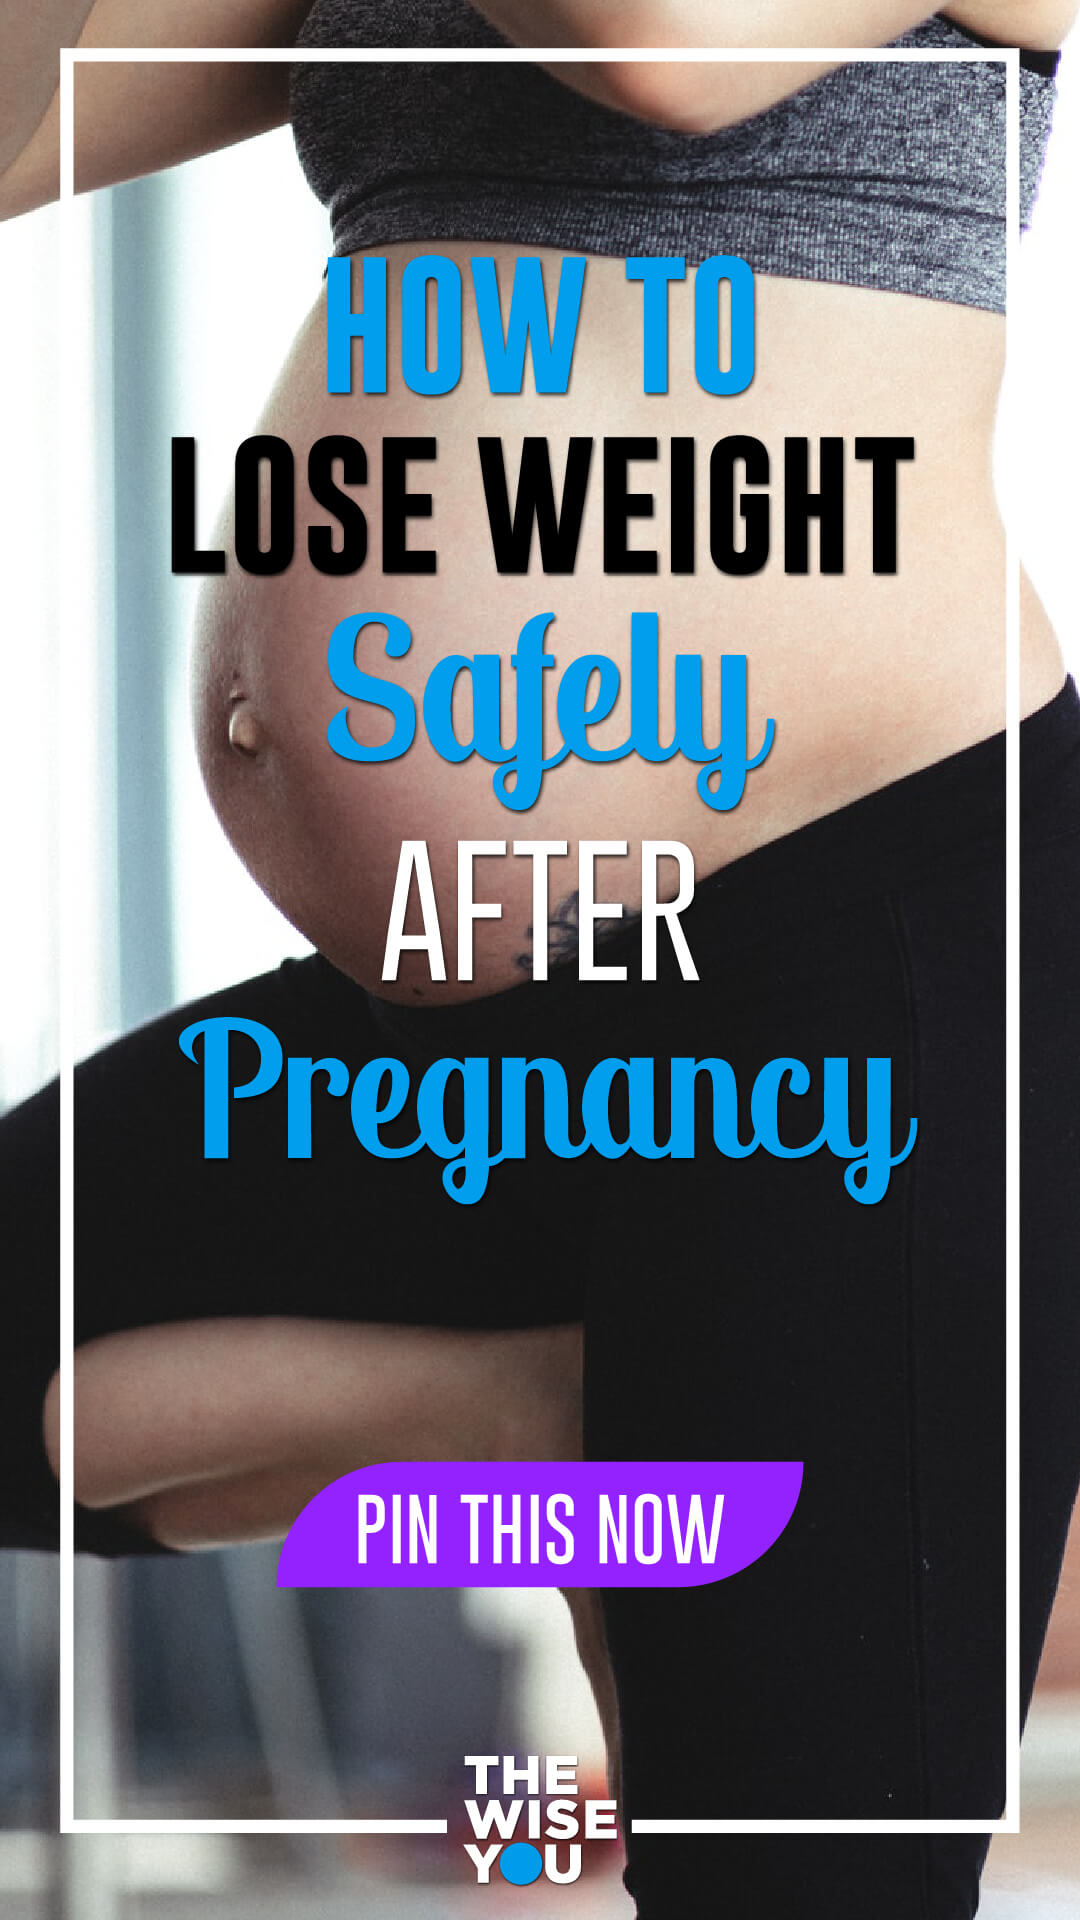 How to Lose Weight Safely After Pregnancy?